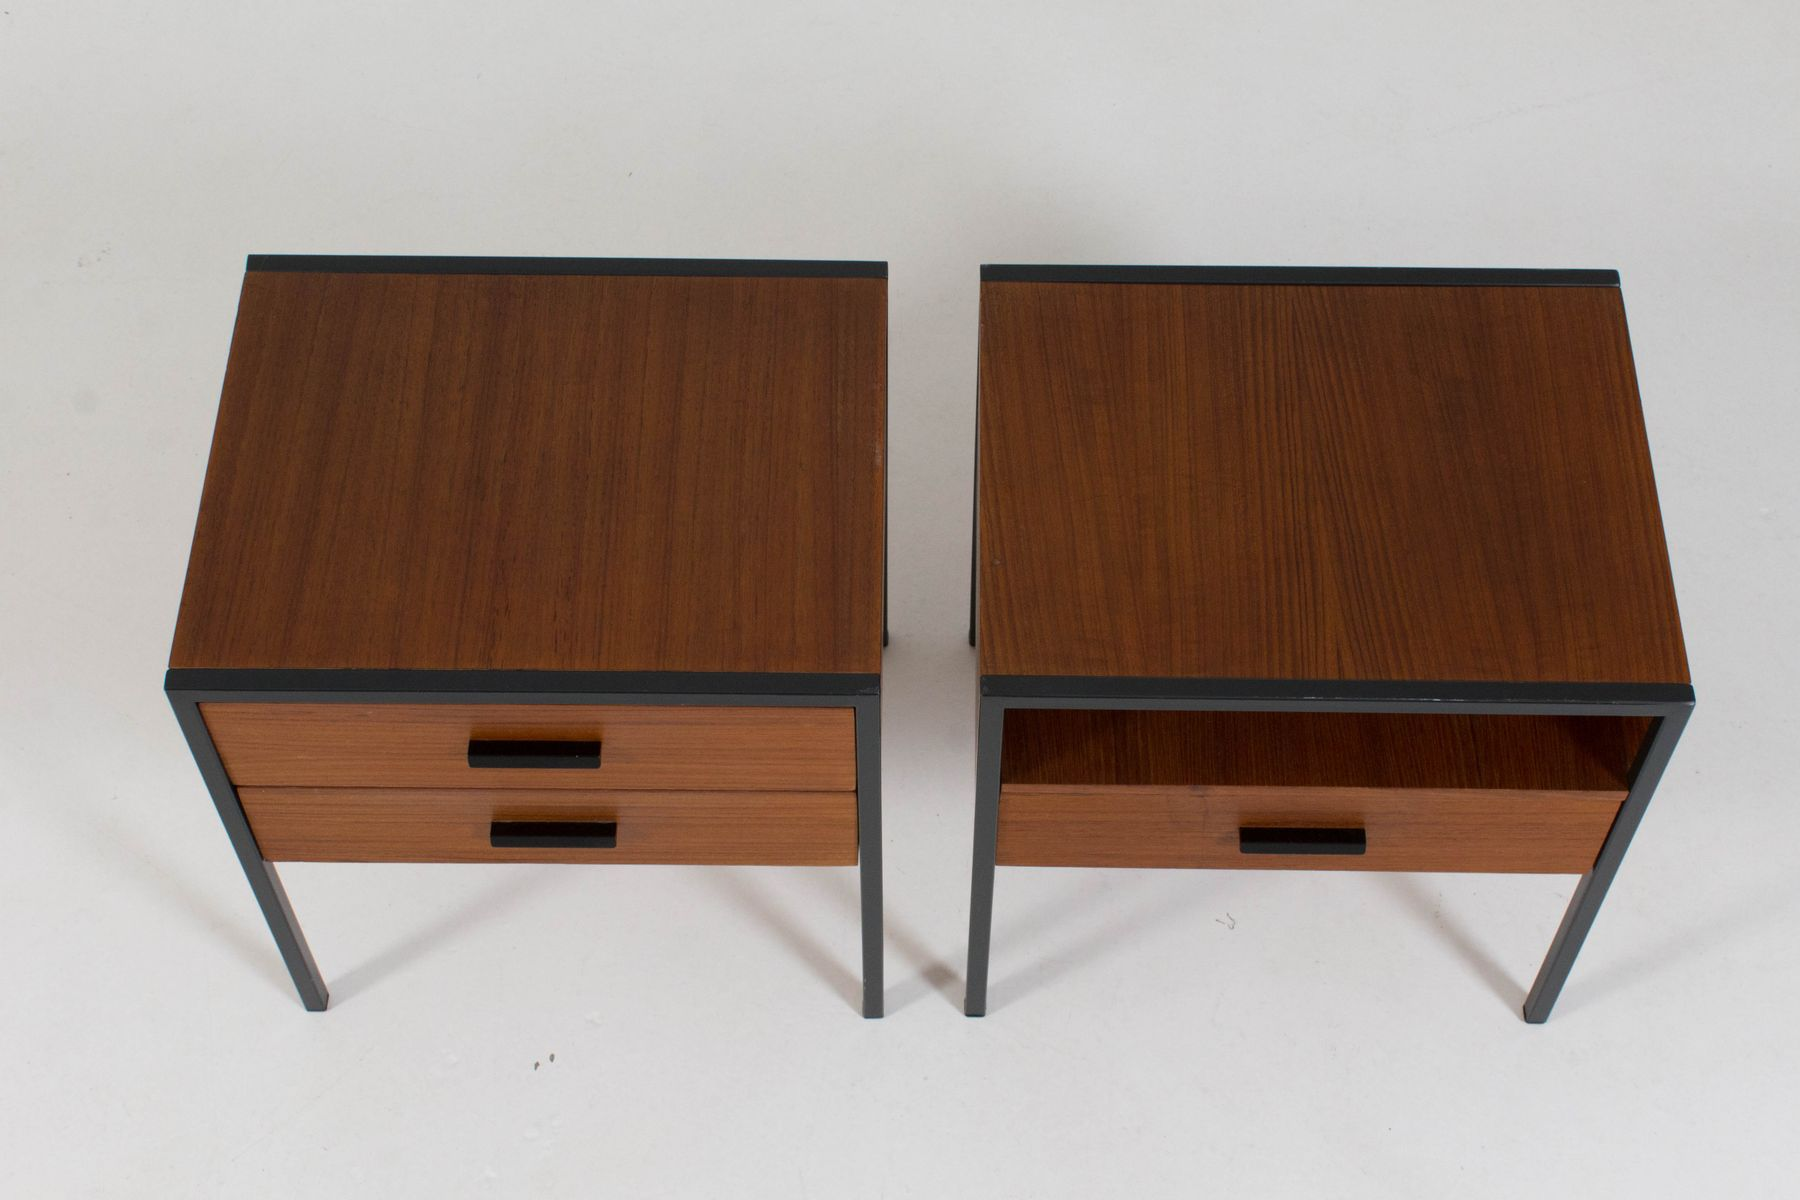 Mid century modern nightstands by cees braakman for pastoe for Modern nightstands for sale